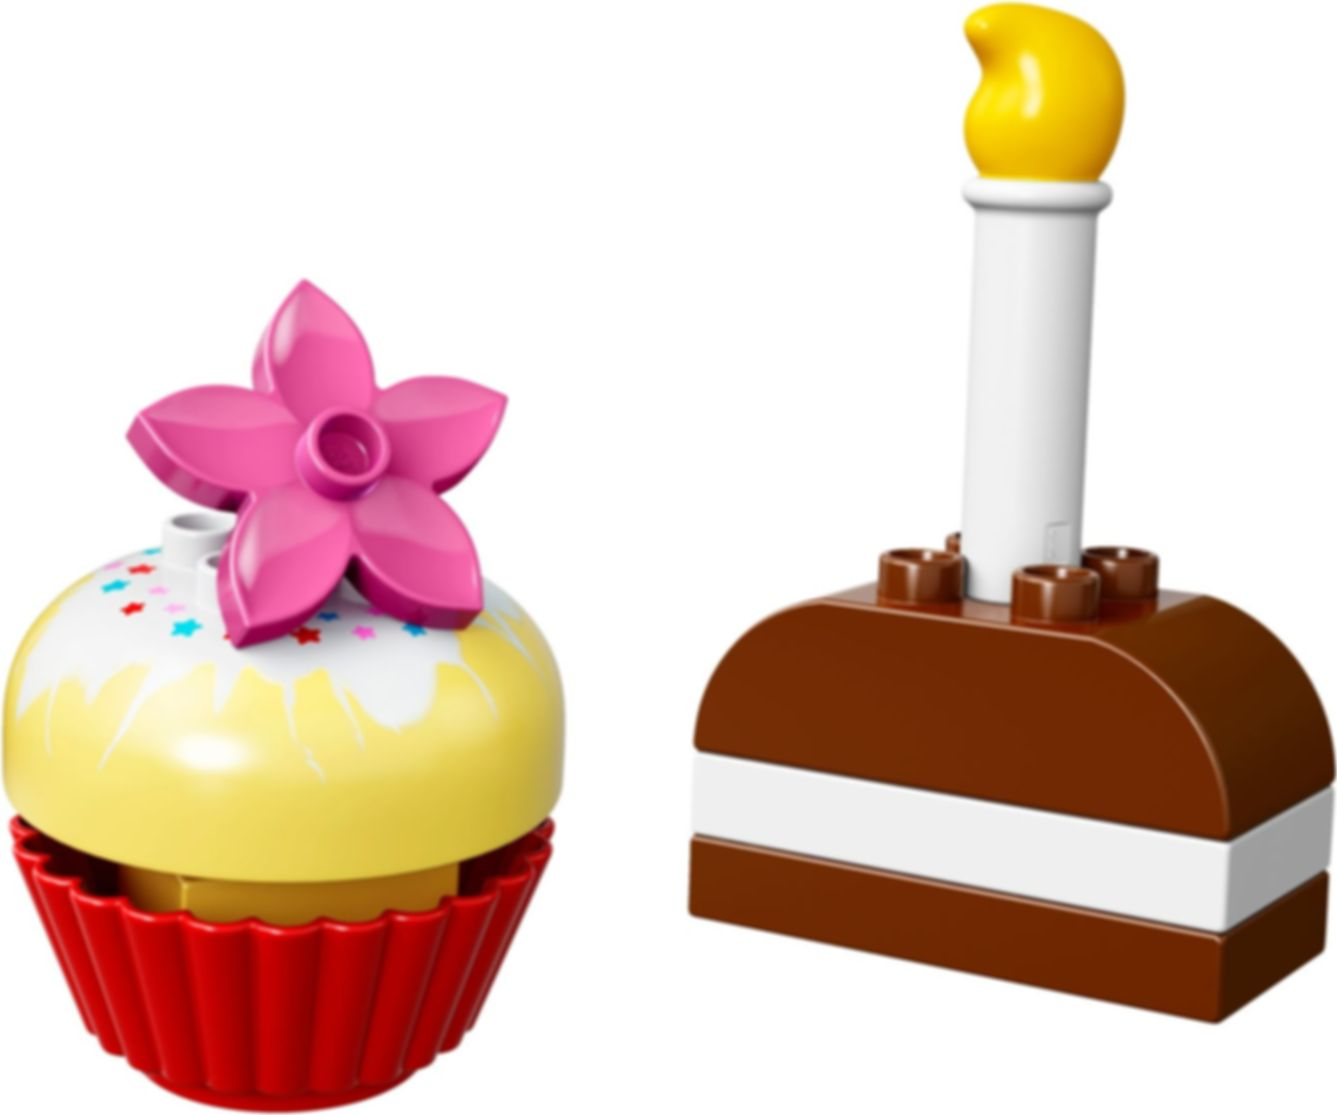 LEGO® DUPLO® My First Cakes components